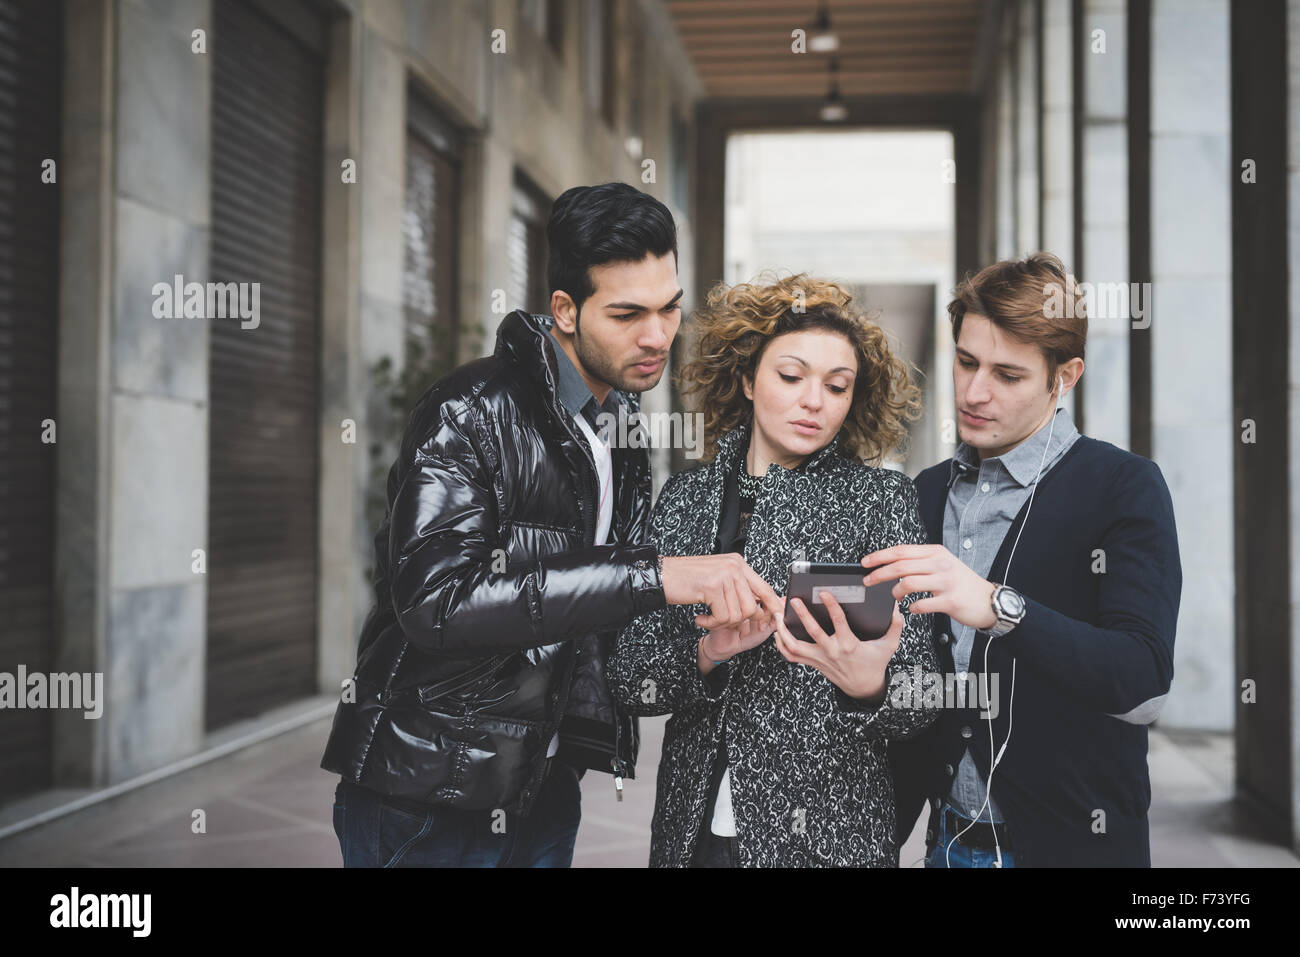 Half length of multiracial business people working outdoor in town using a tablet, all of them looking downward - Stock Image